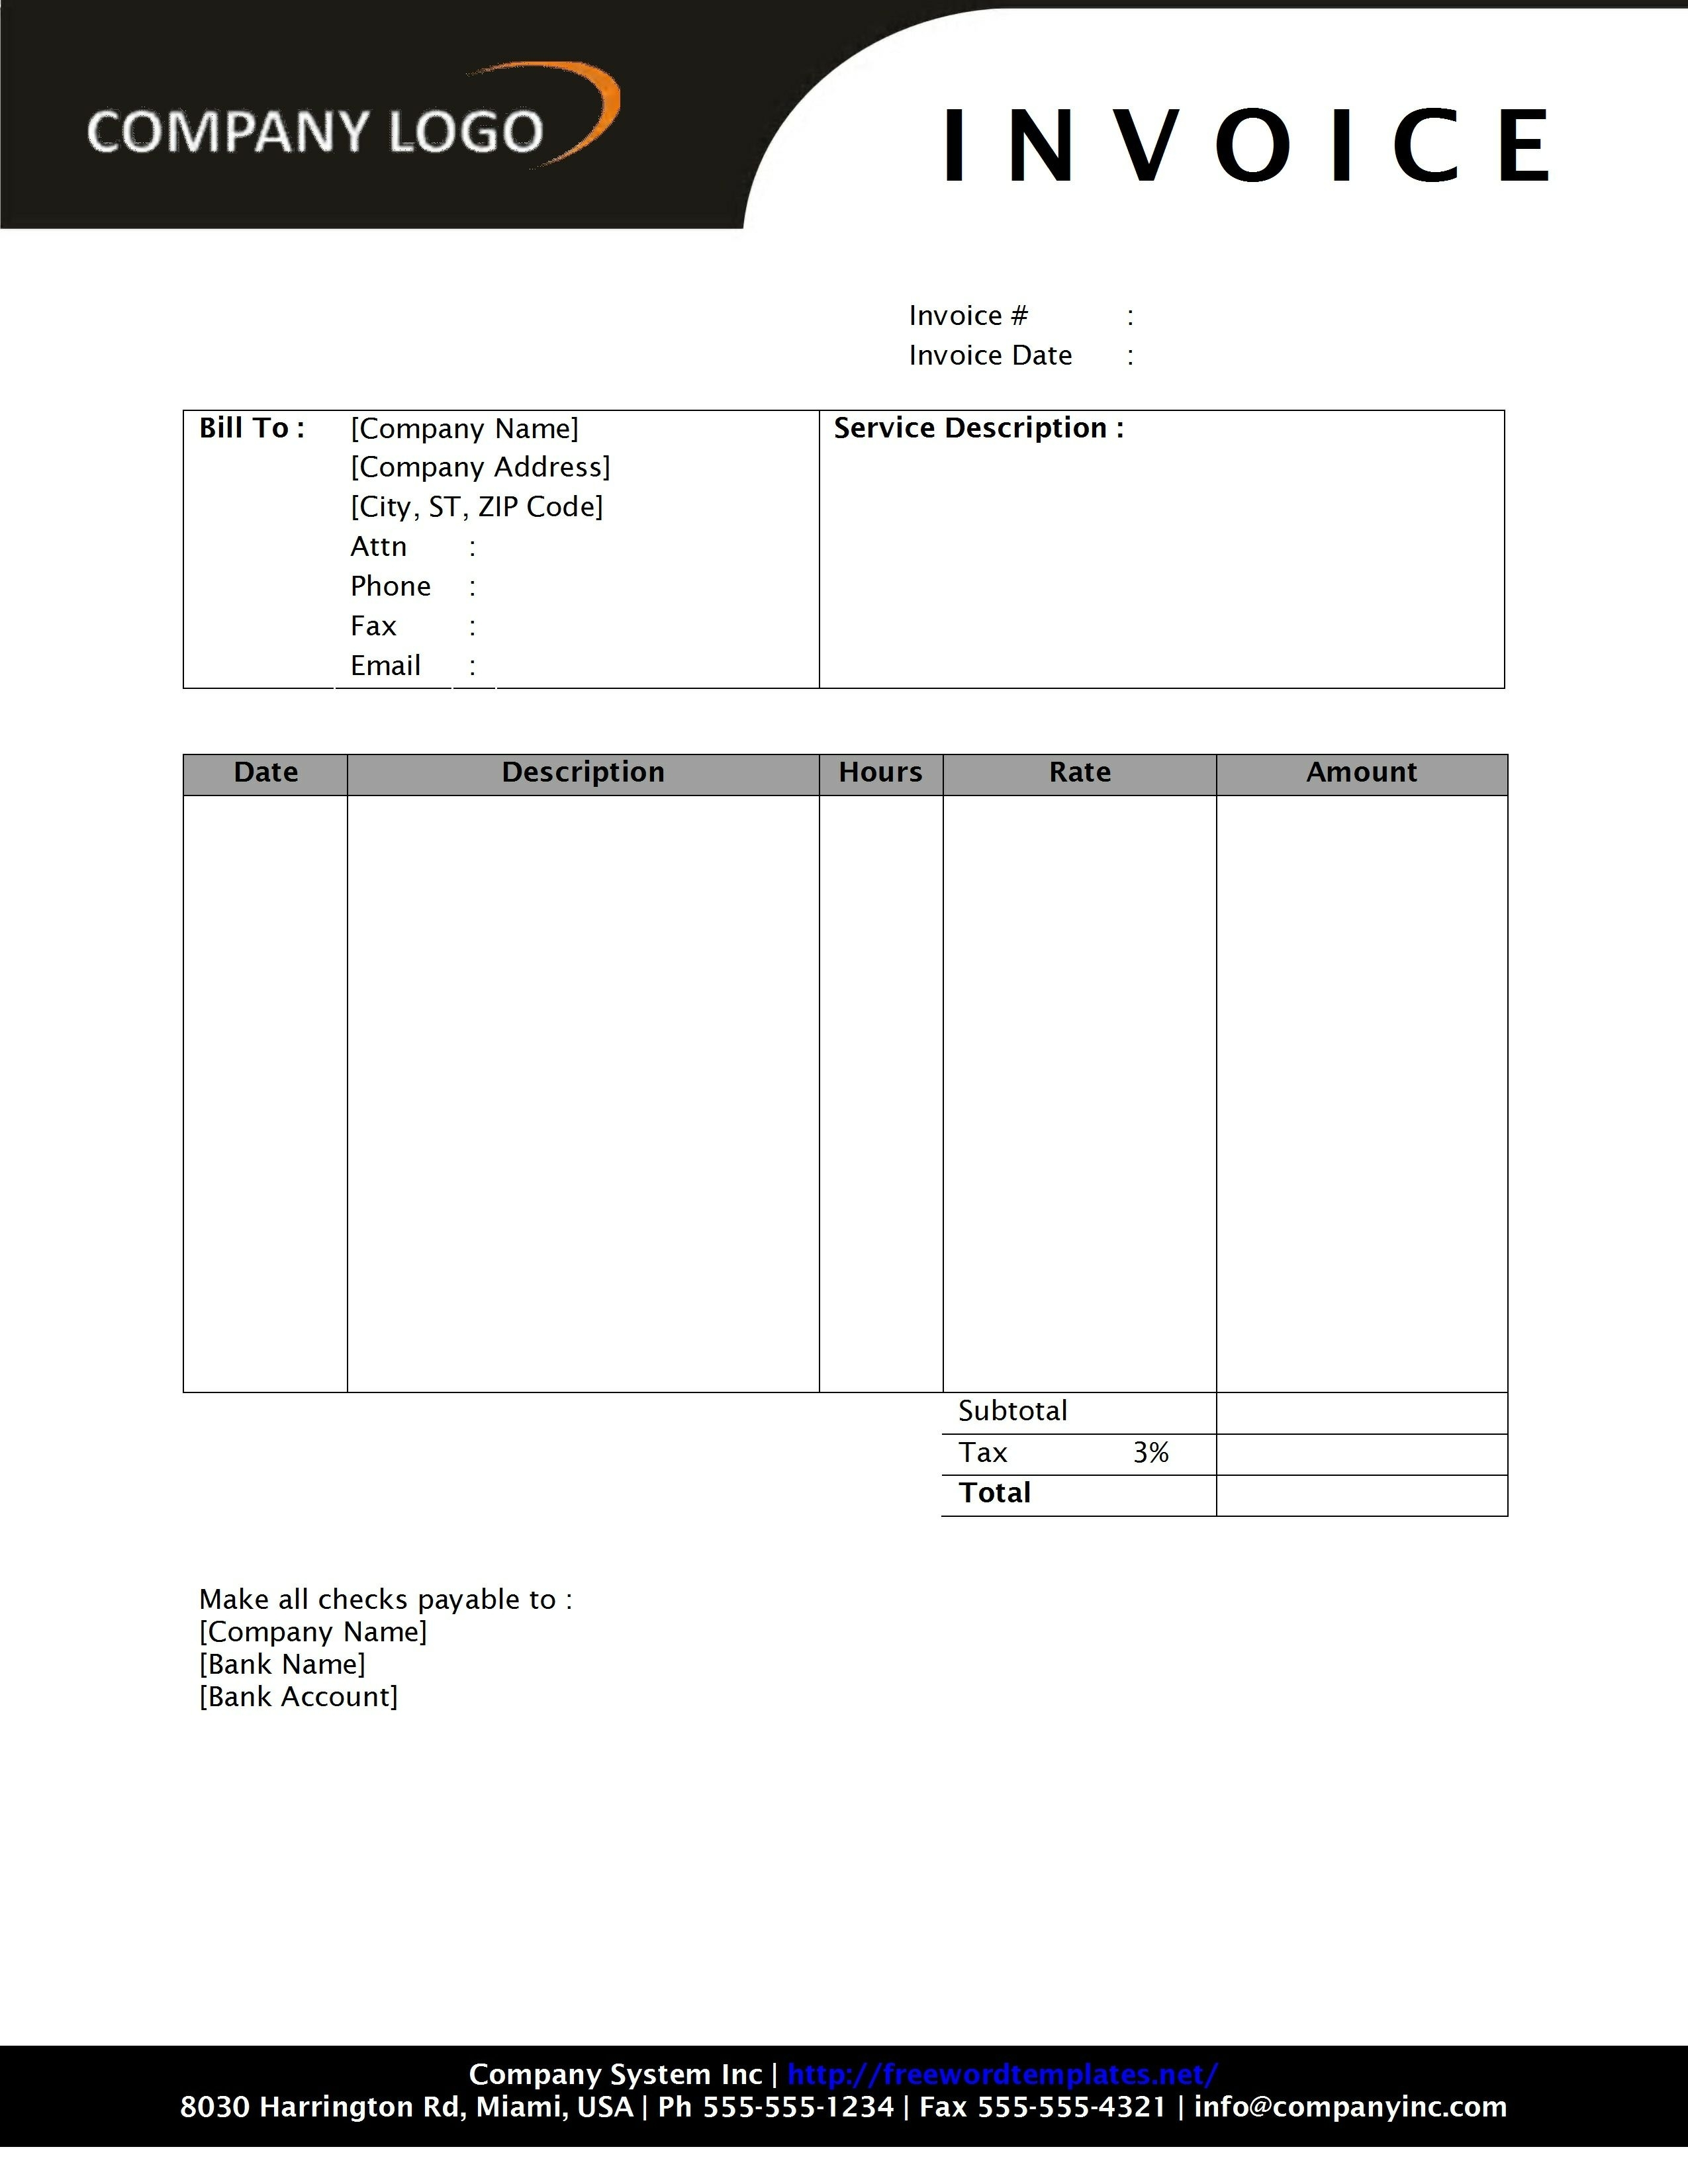 microsoft word invoice template free download invoice template microsoft word invoice template download